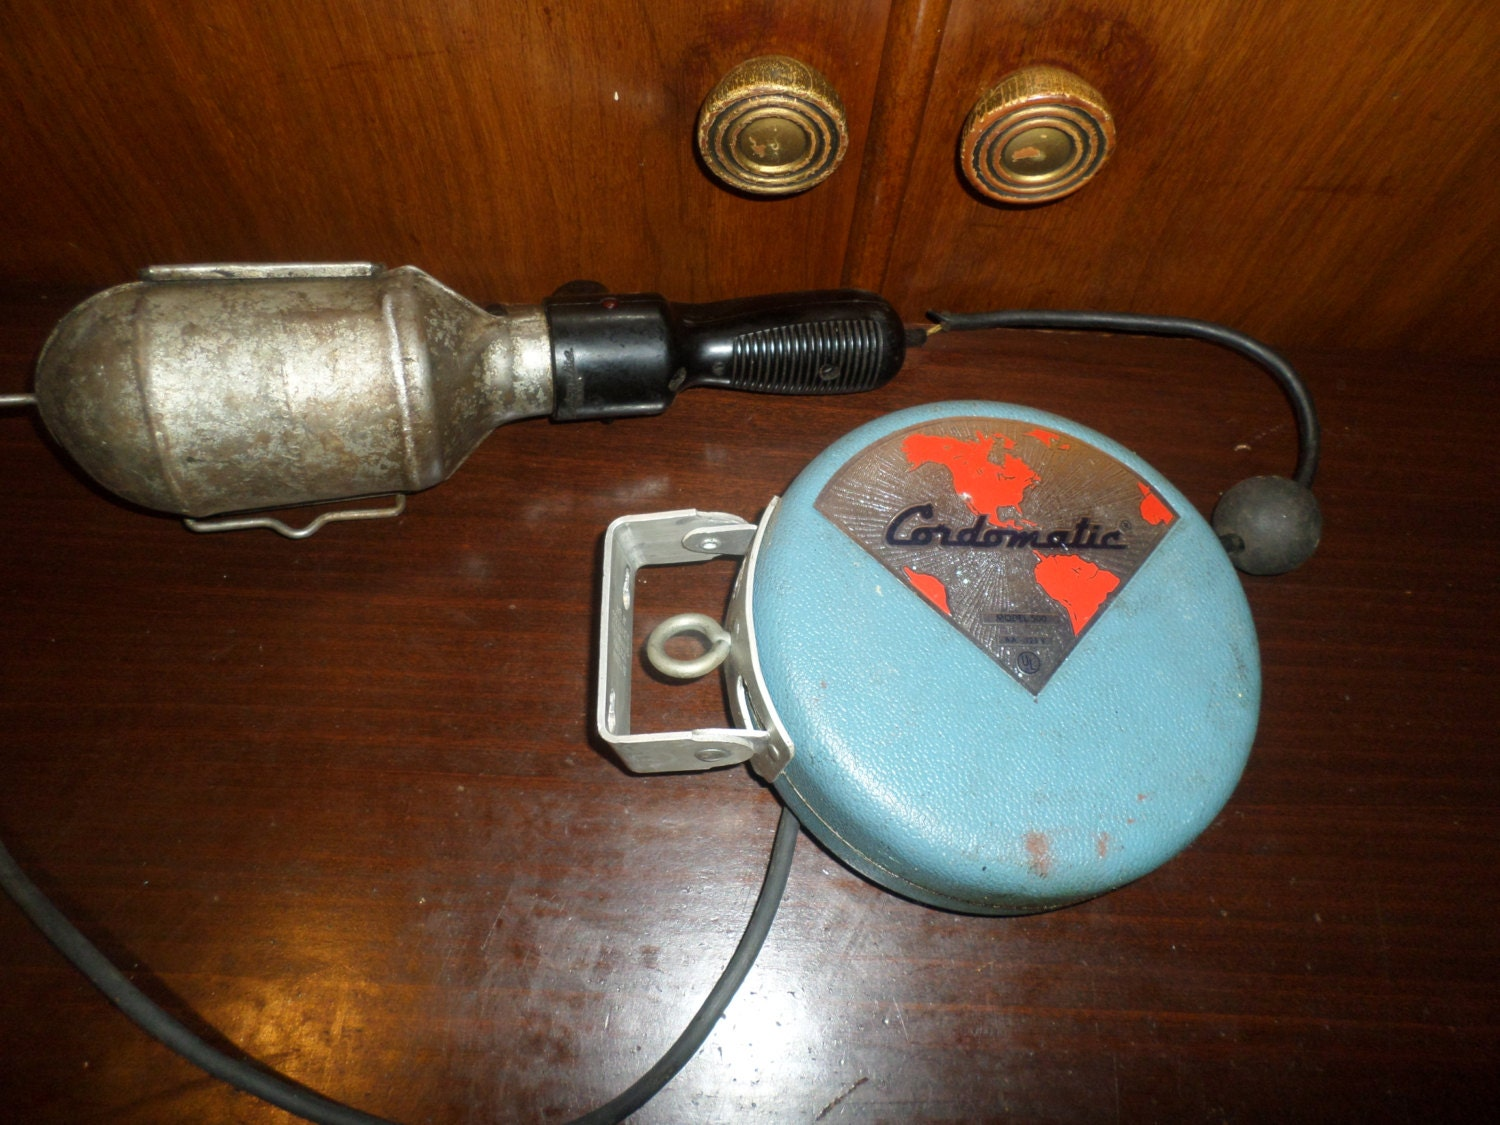 Vintage Cordomatic Model 500 Retractable Cord Light Garage